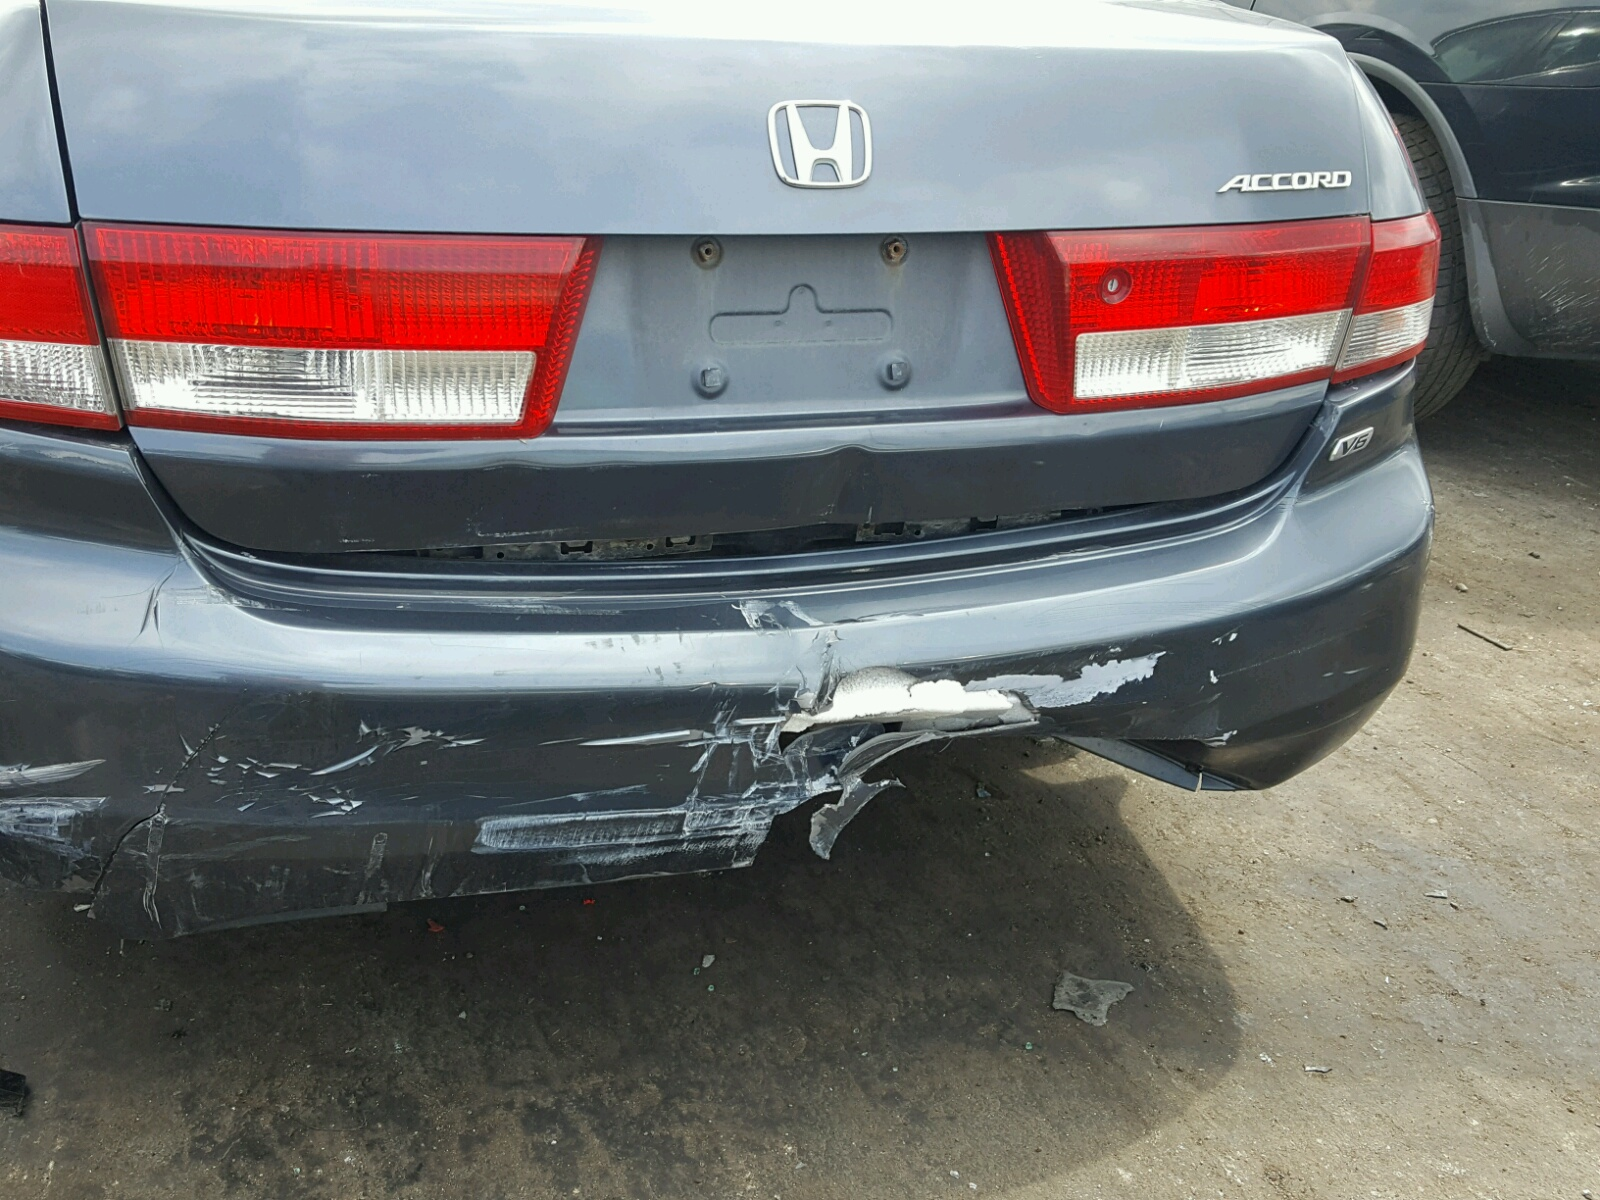 2003 Honda Accord Lx For Sale At Copart Chicago Heights Il Lot Tail Light